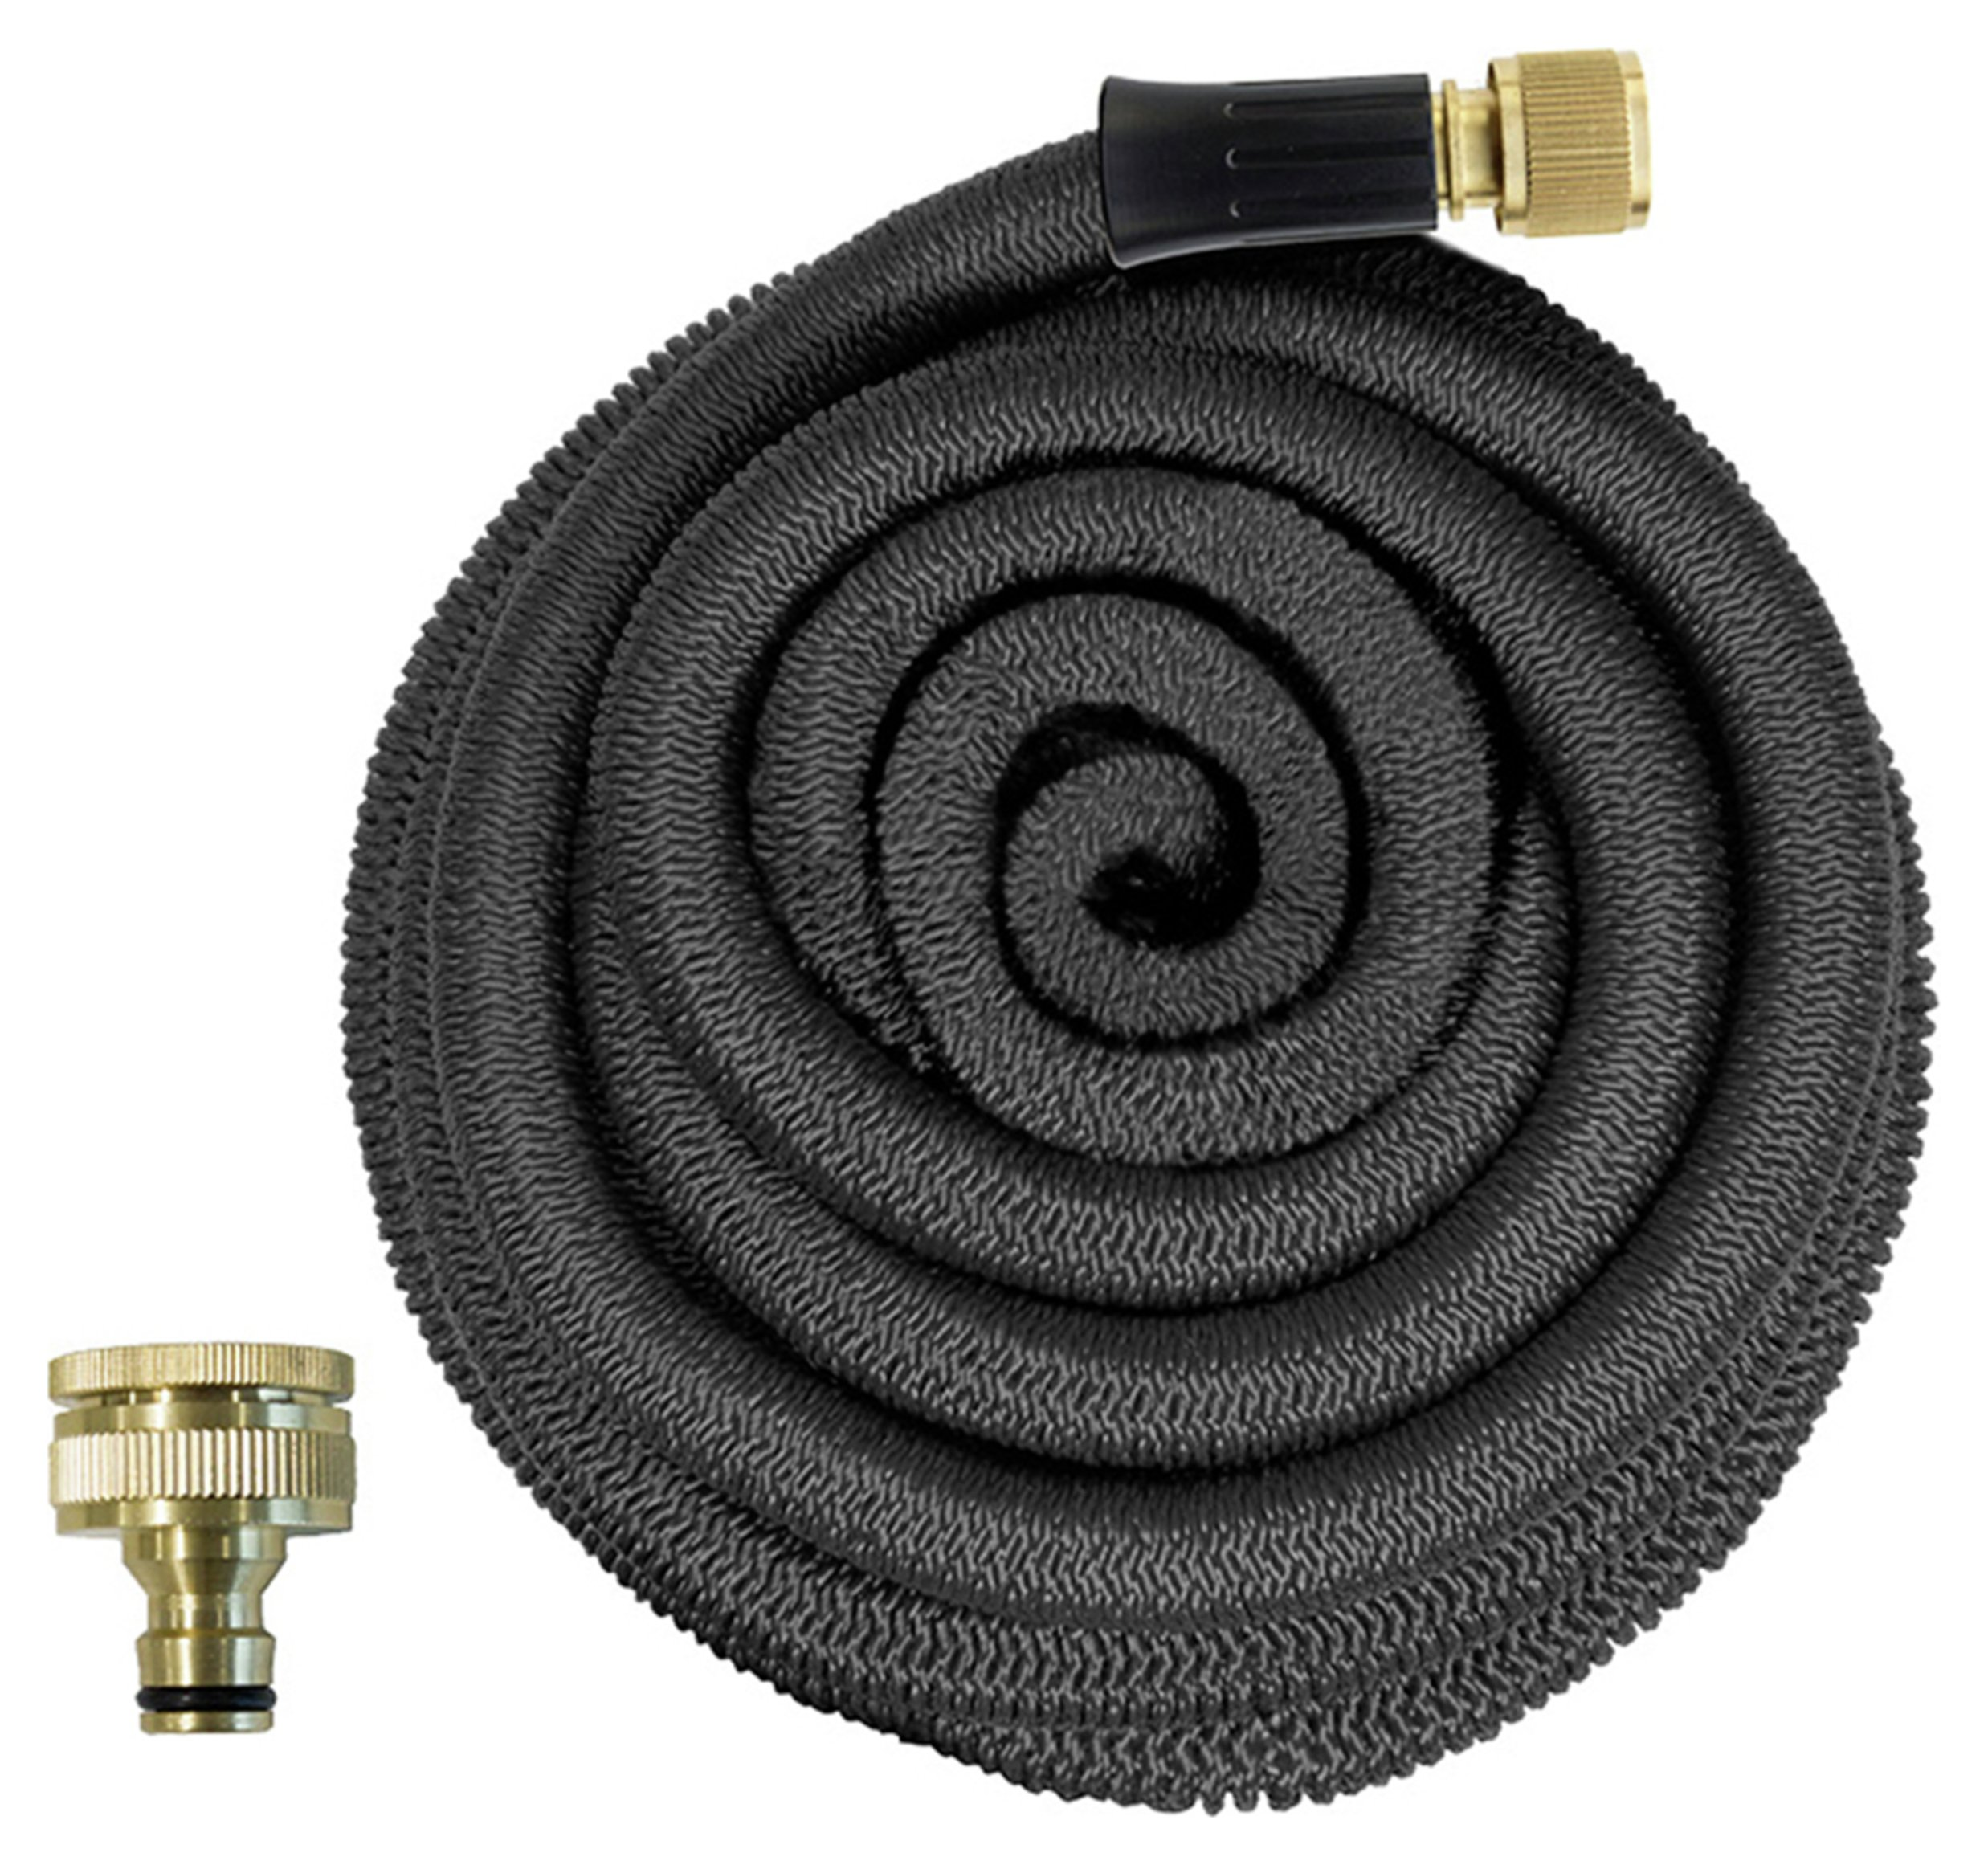 sale on xhose pro 50ft hose xhose now available our. Black Bedroom Furniture Sets. Home Design Ideas